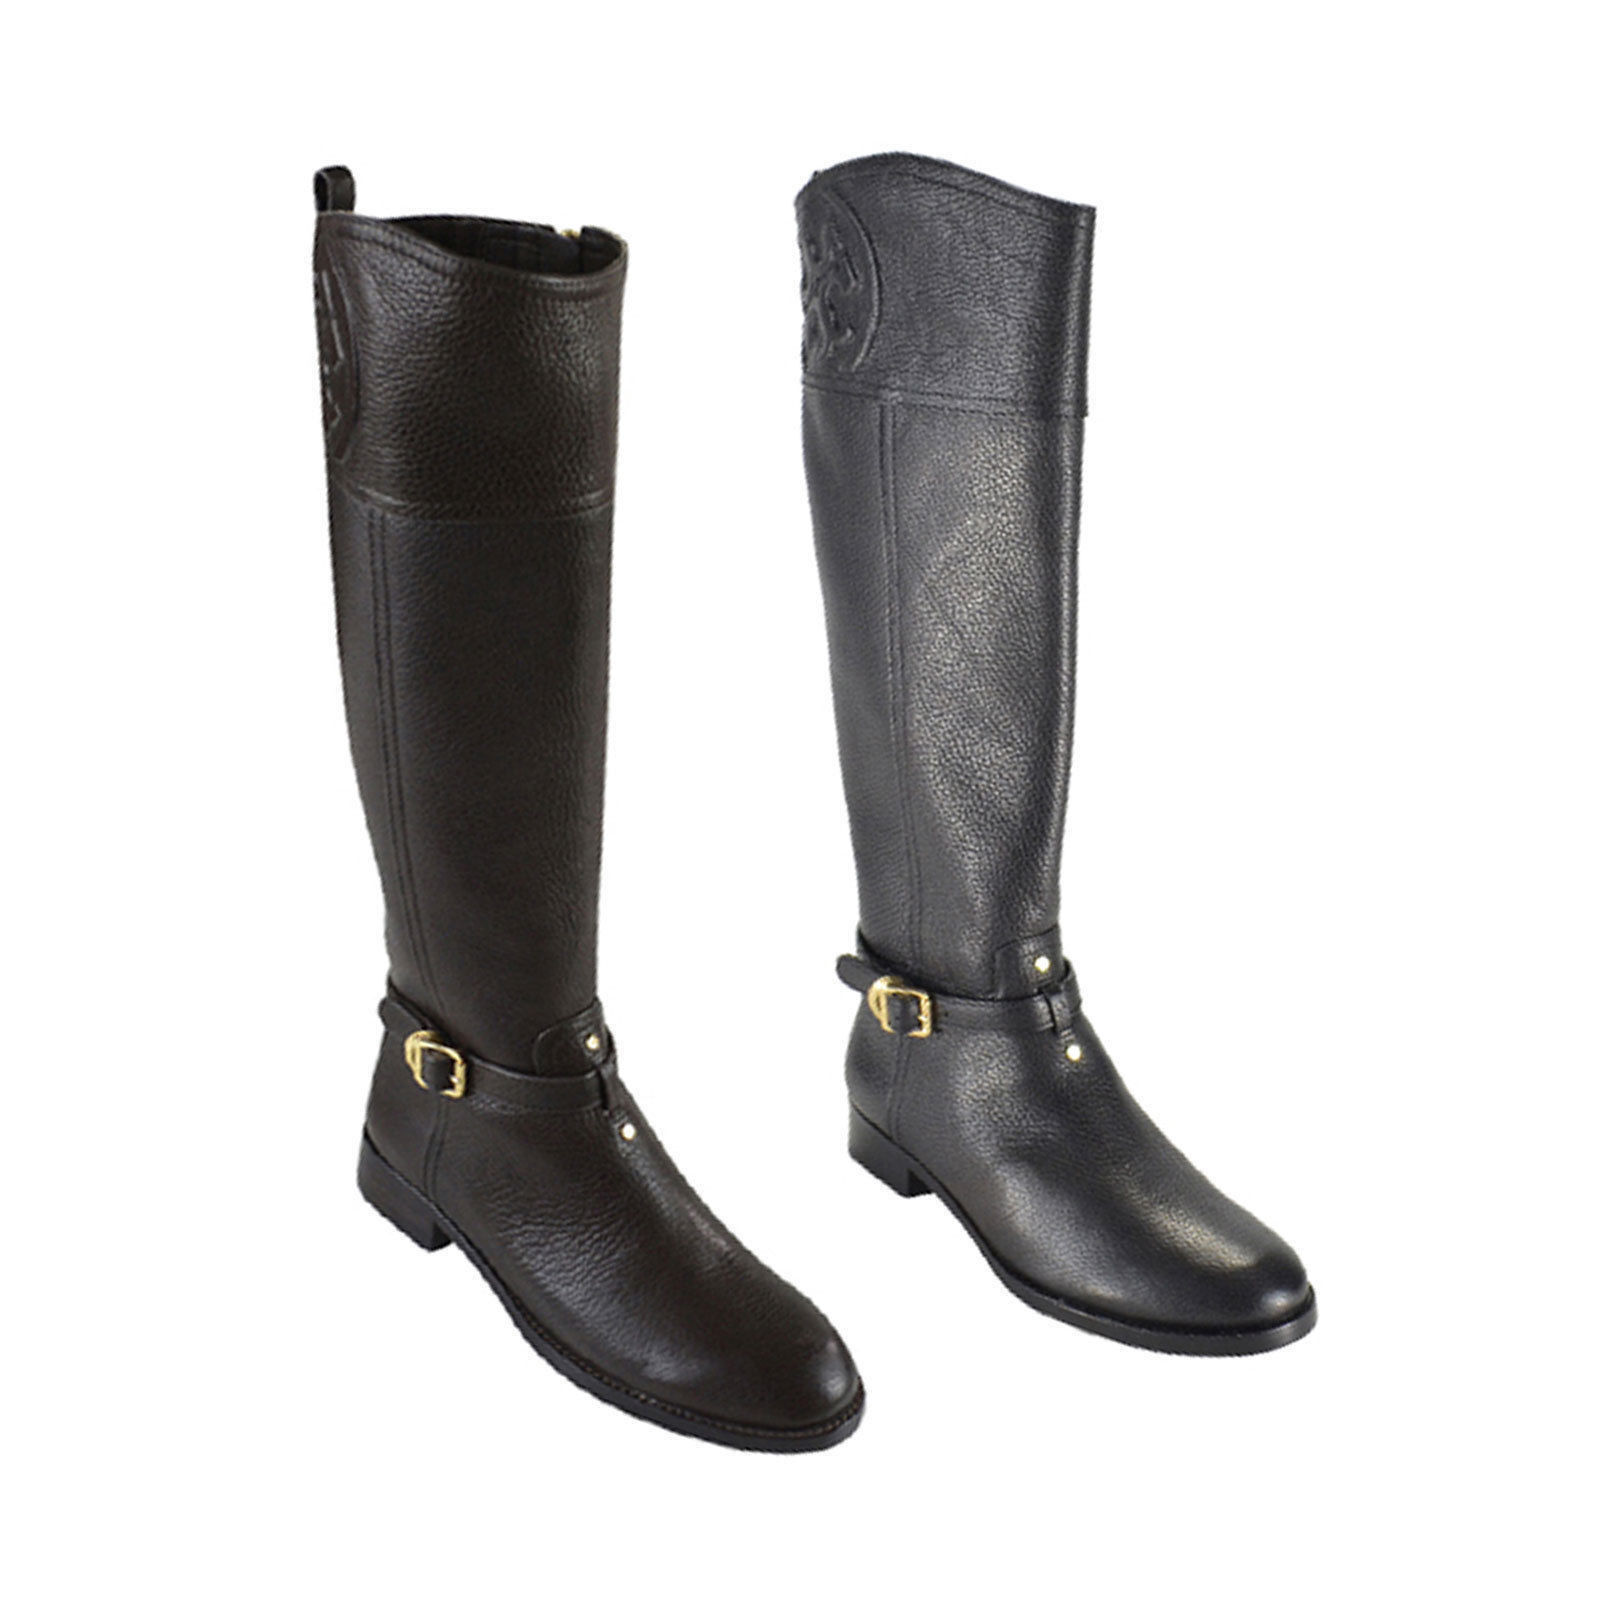 96abdc77fd60 These Tory Burch Marlene riding boots are made of tumbled leather. A  classic way to keep you warm yet stylish.